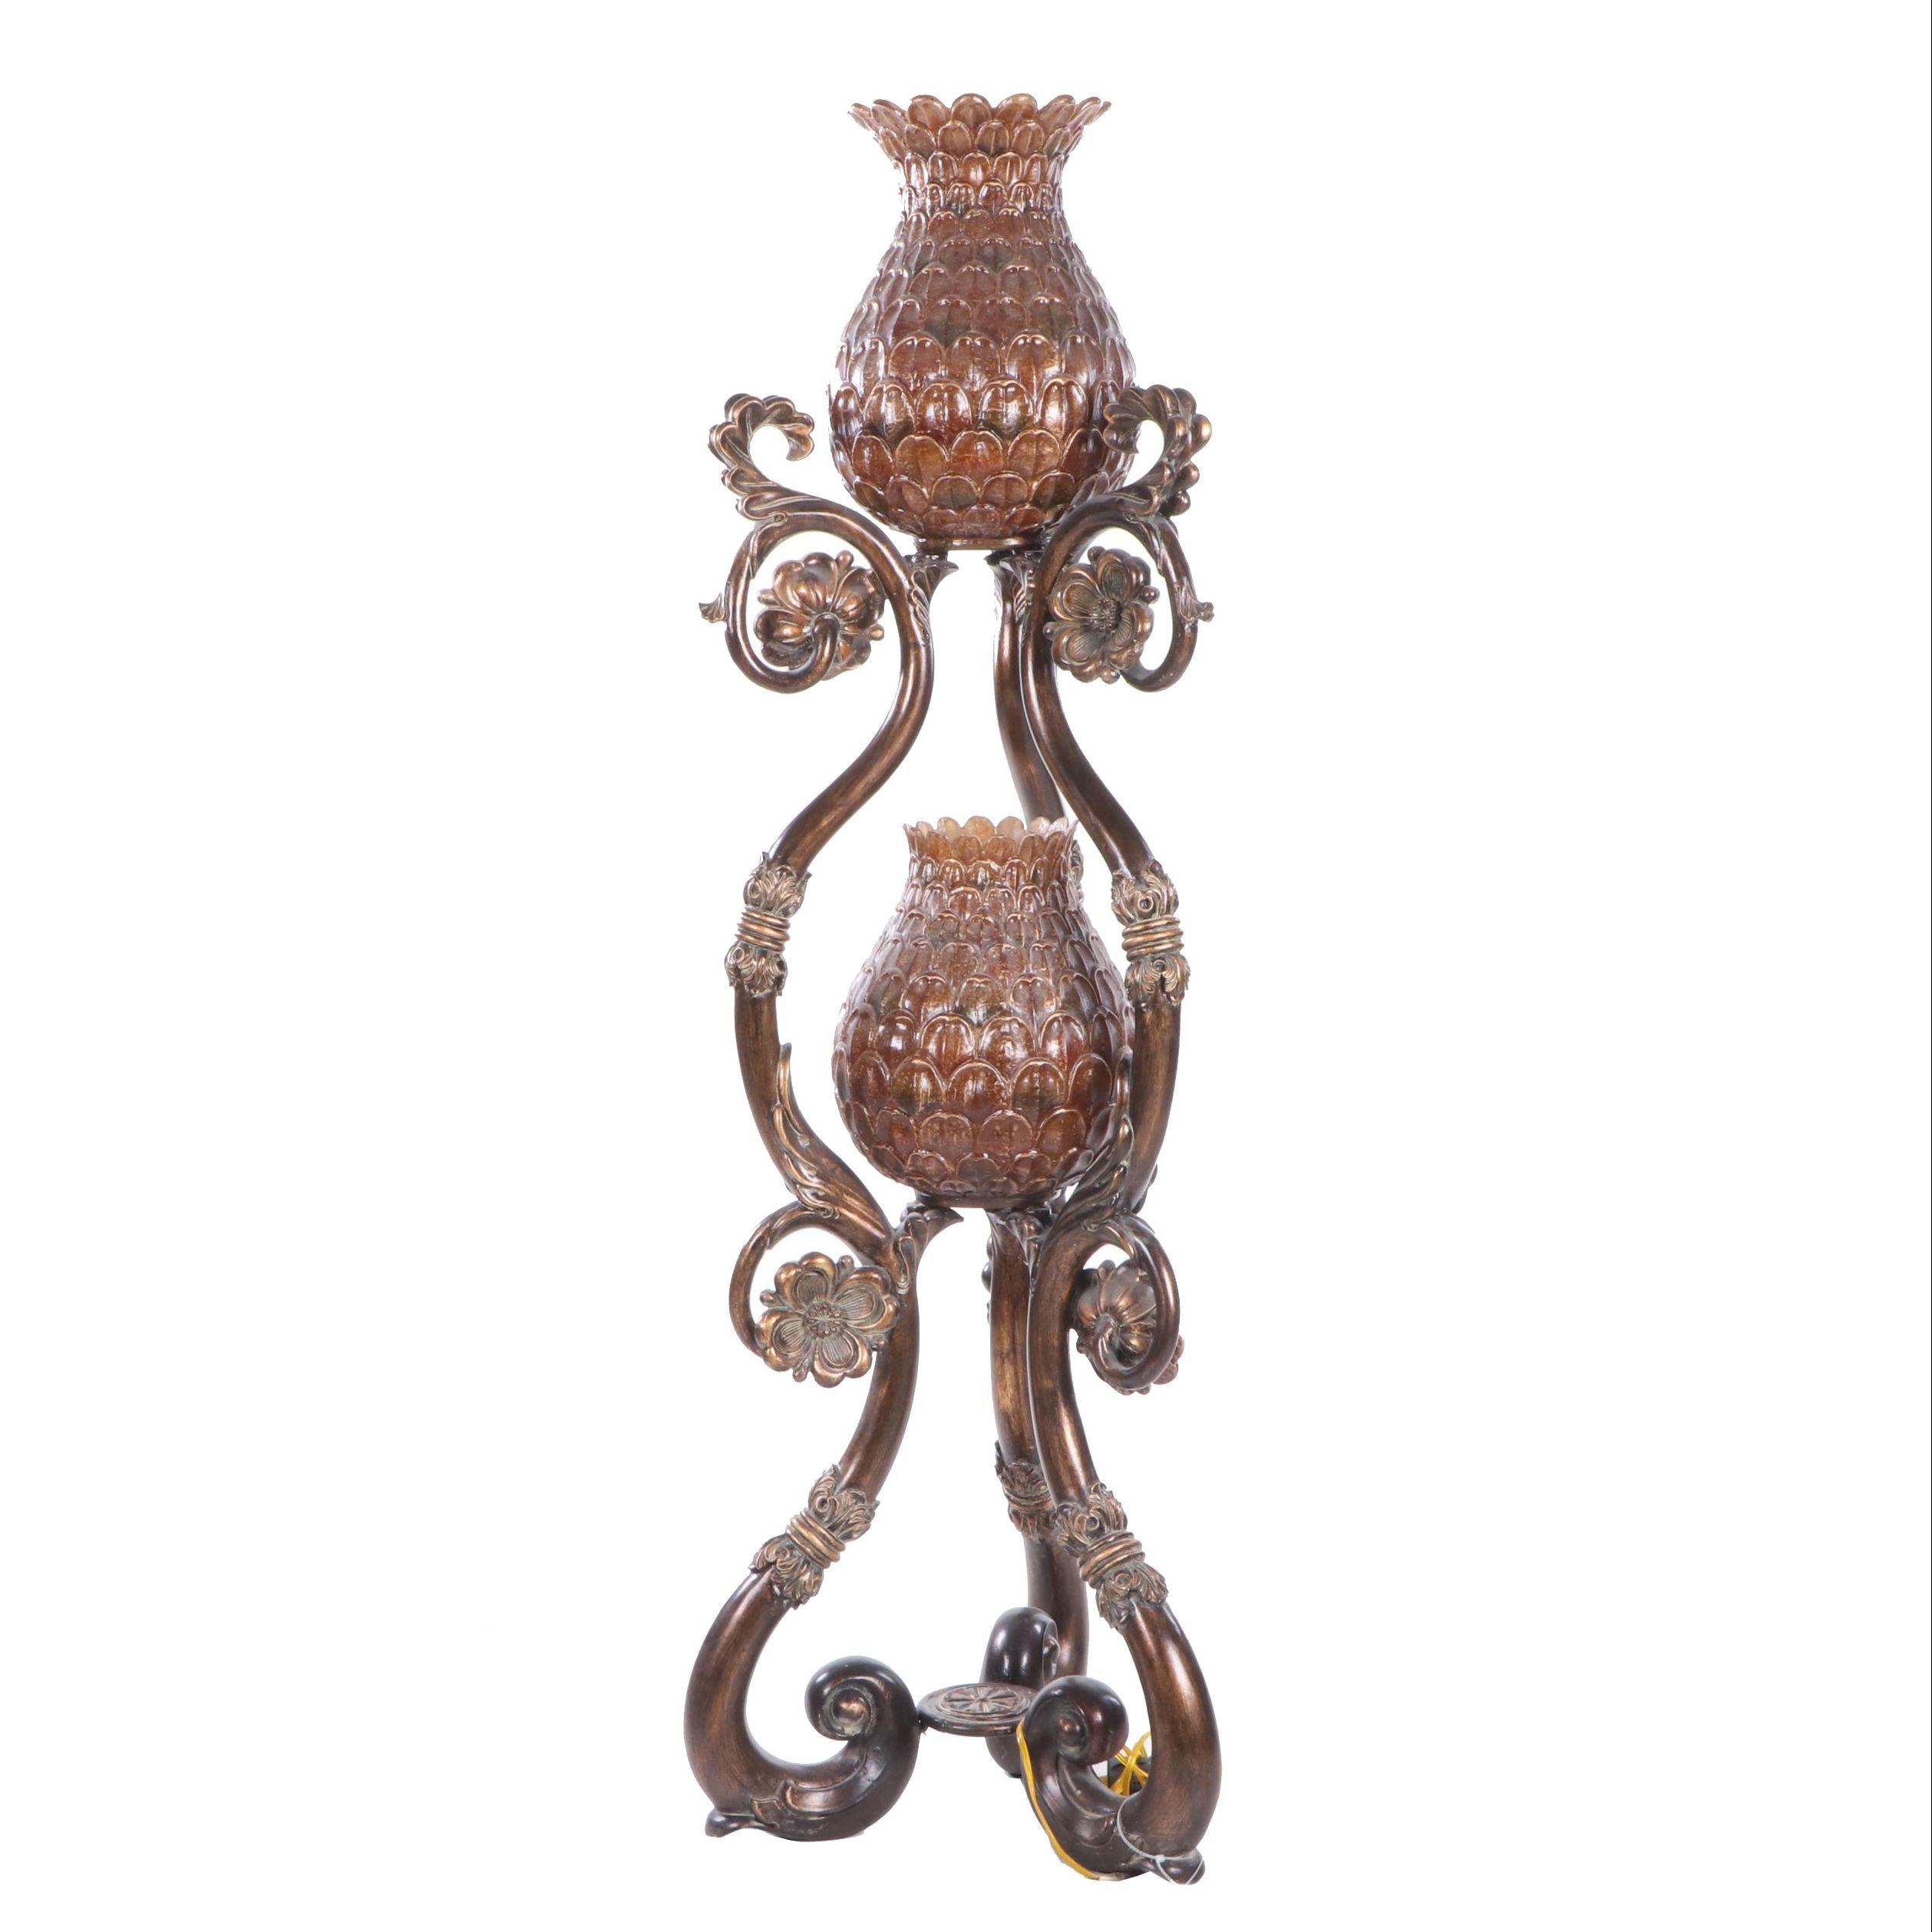 British Colonial Style Tiered Pineapple Floor Lamp